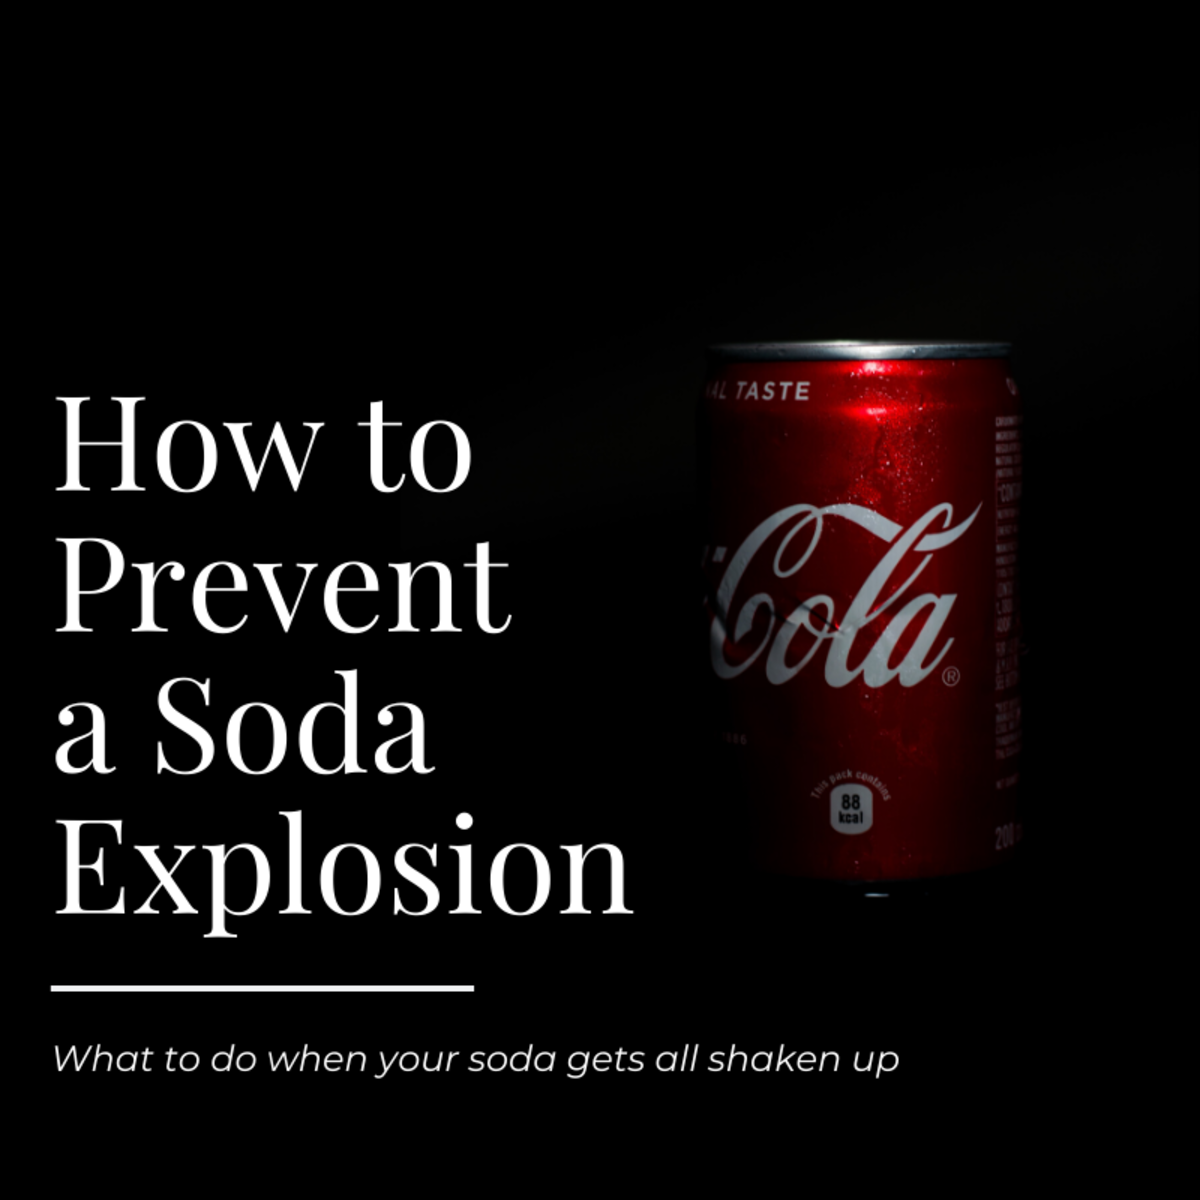 This article will provide some tips about what to do if your soda can or bottle gets all shaken up and you want to drink it without the contents exploding all over the place.